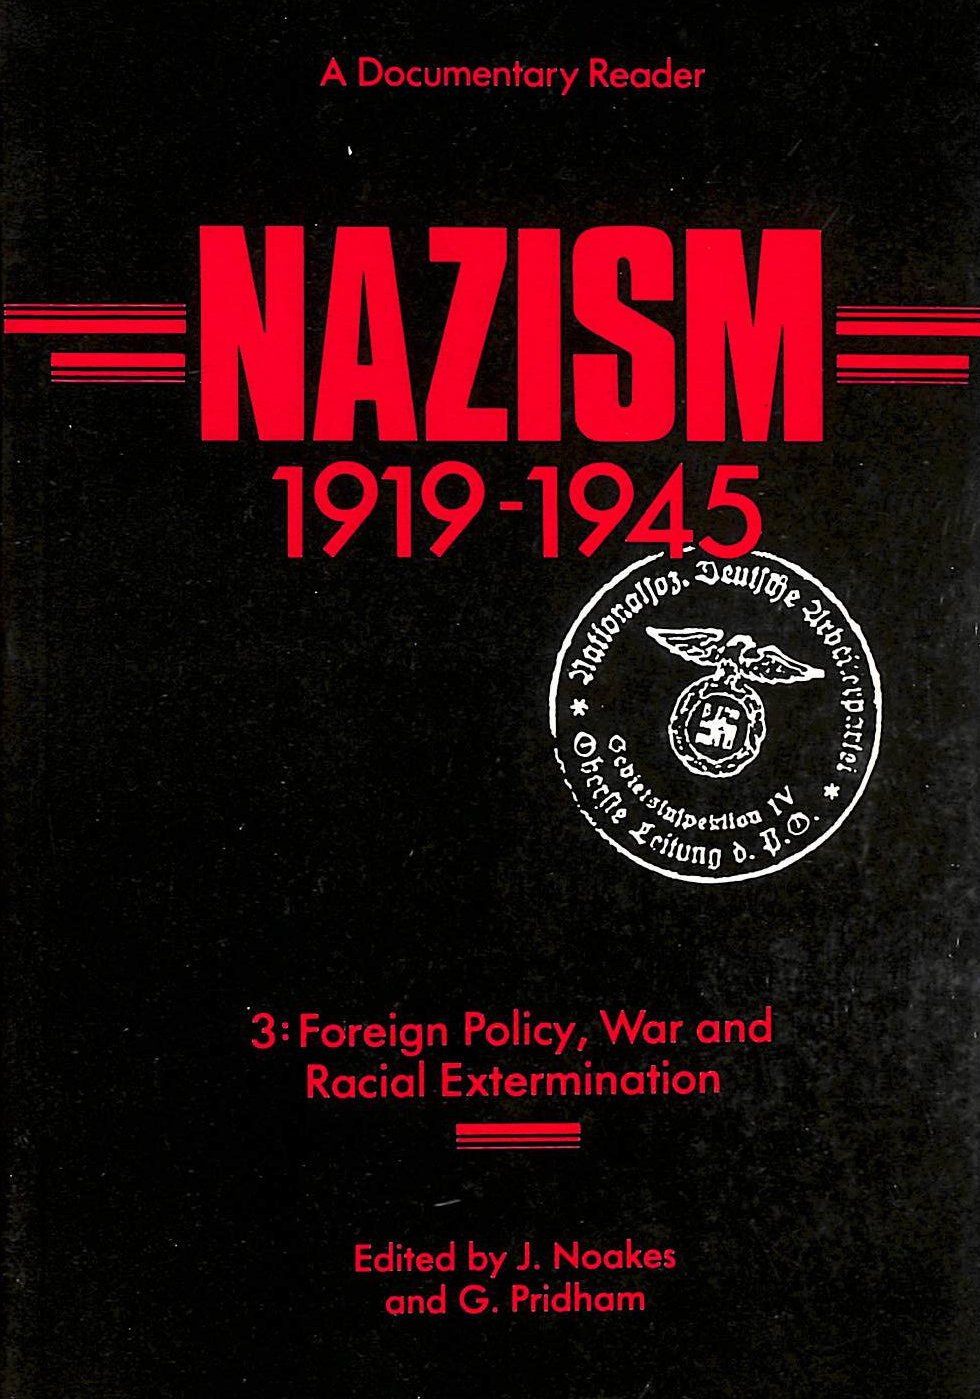 Image for Nazism 1919-1945, A Documentary Reader. Volume Three: V. 3: Foreign Policy, War And Racial Extermination